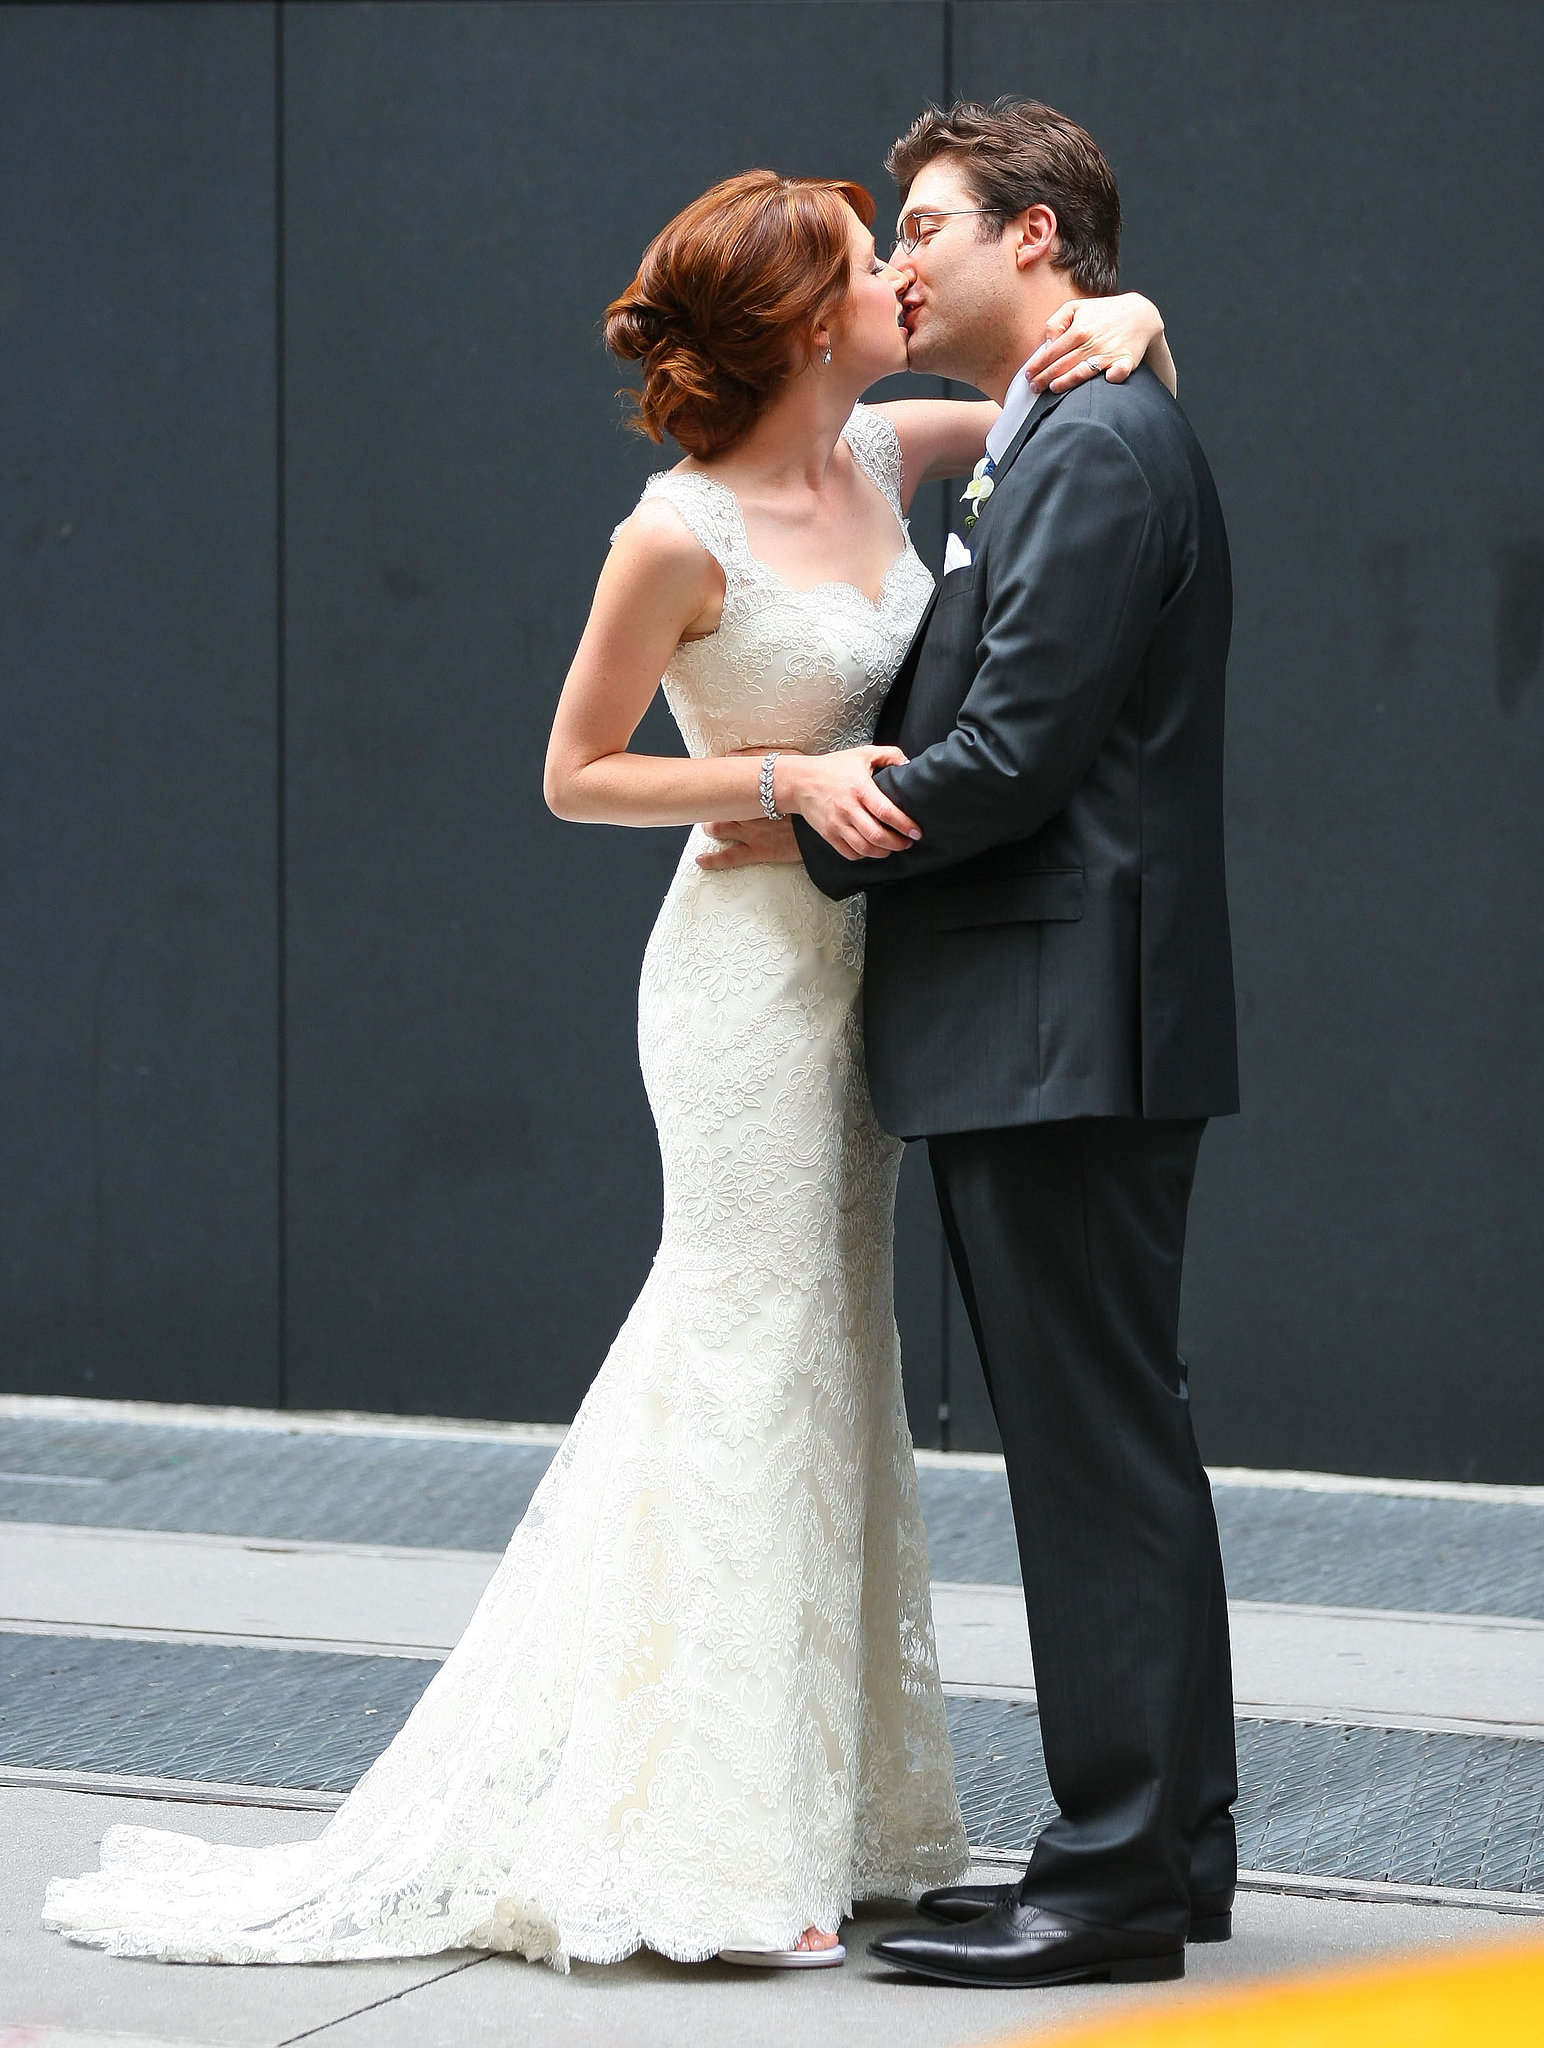 Ellie Kemper got married to Michael Koman in NYC in July 2012.